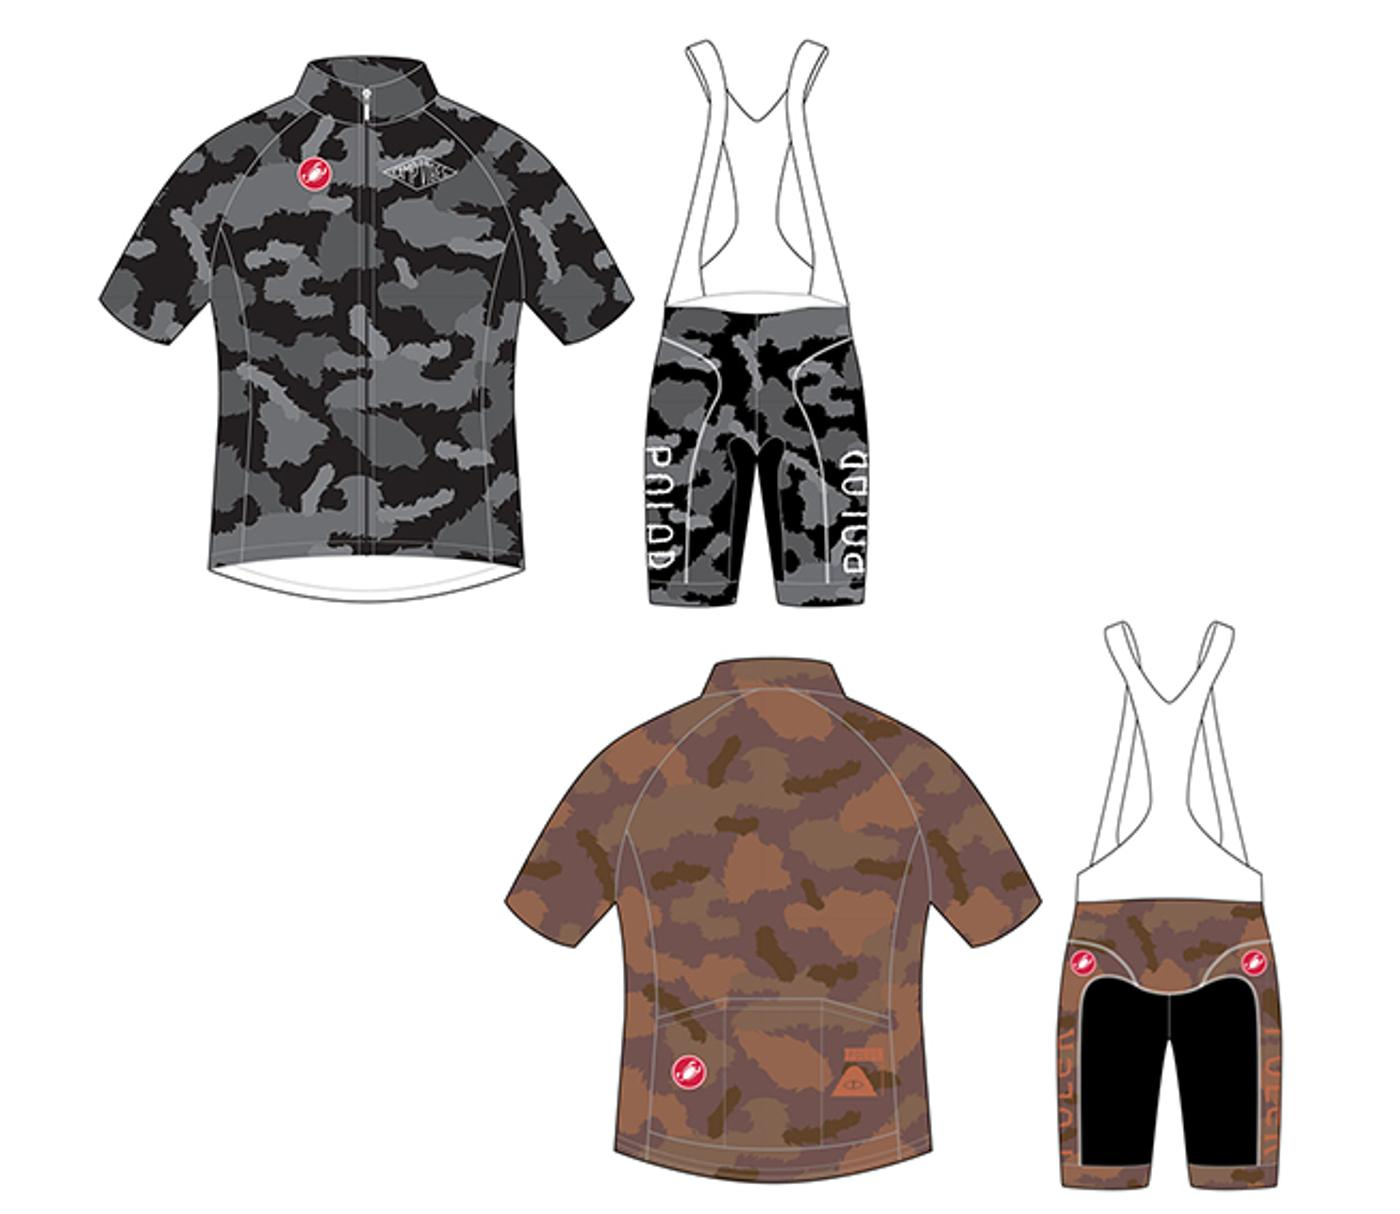 Poler Furry Camo Cycling Kit by Castelli Pre-Order